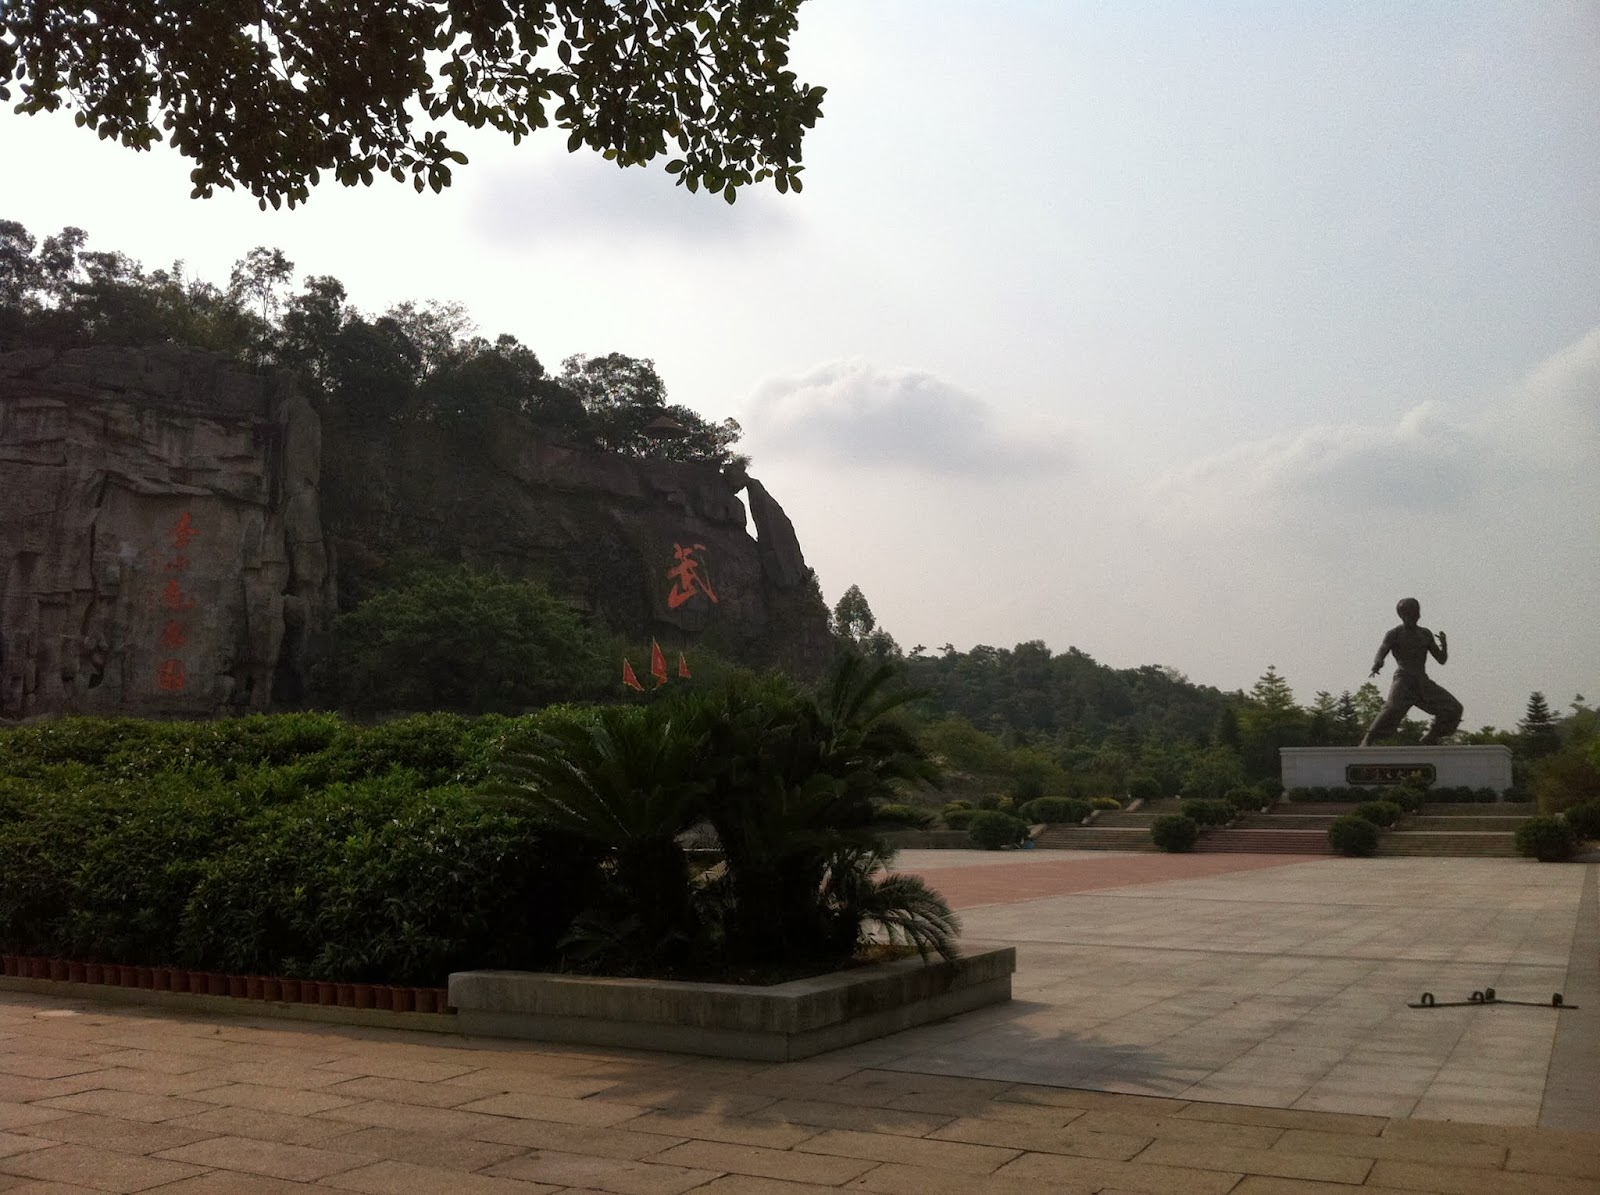 Bruce Lee theme park, Guangdong Province, China